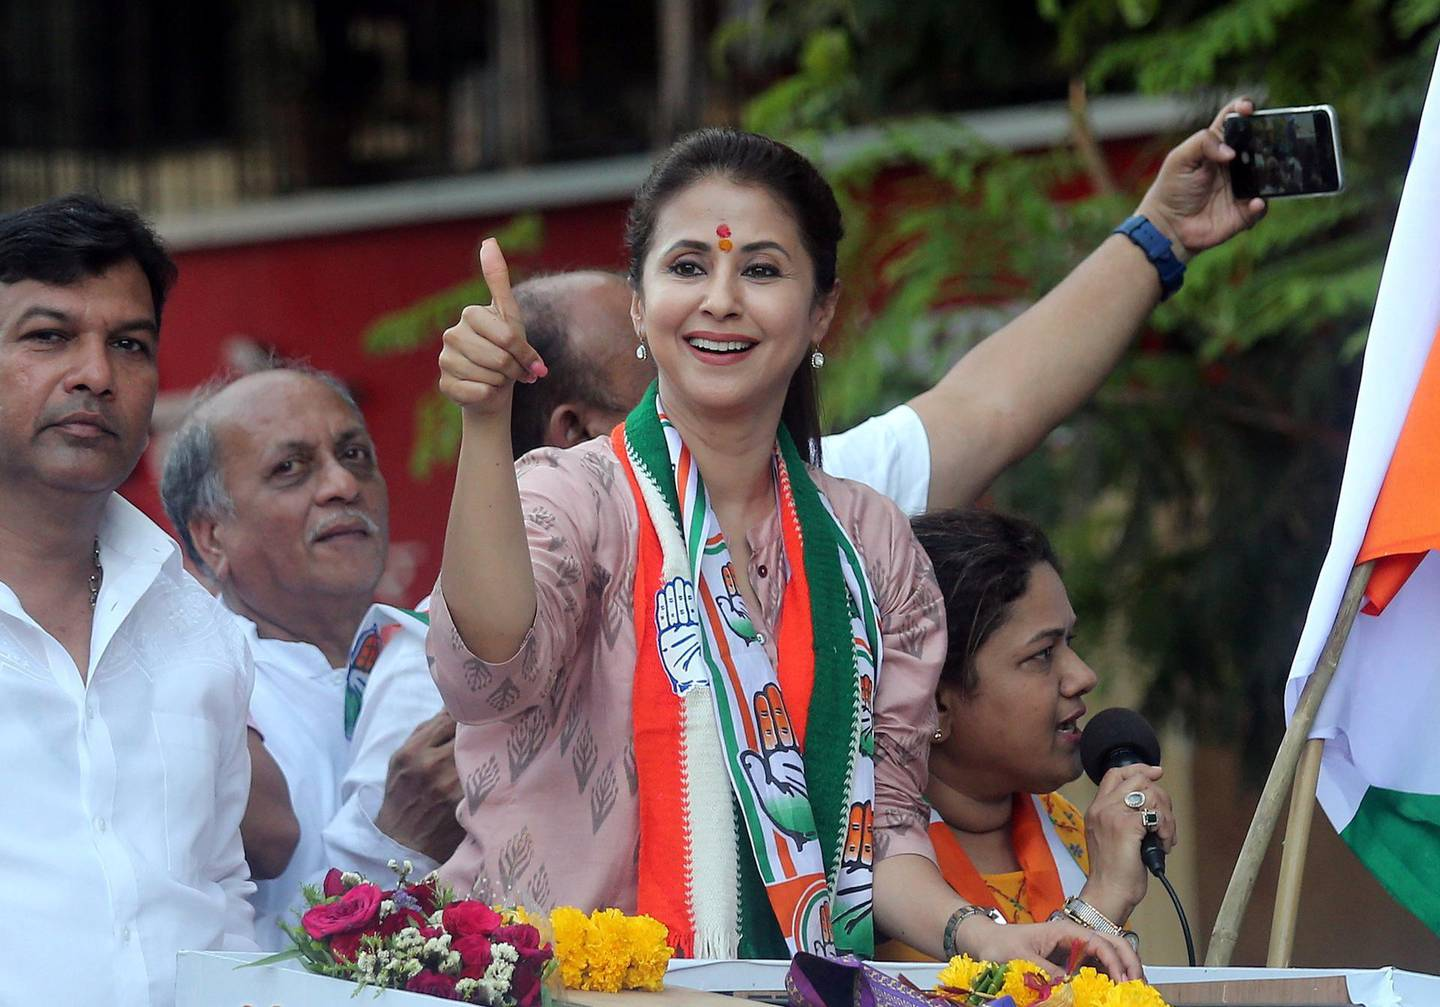 Urmila Matondkar, Bollywood actress-turned-politician who recently joined India's main opposition Congress party, gestures during her election campaign rally in Mumbai, India, April 11, 2019. REUTERS/Francis Mascarenhas